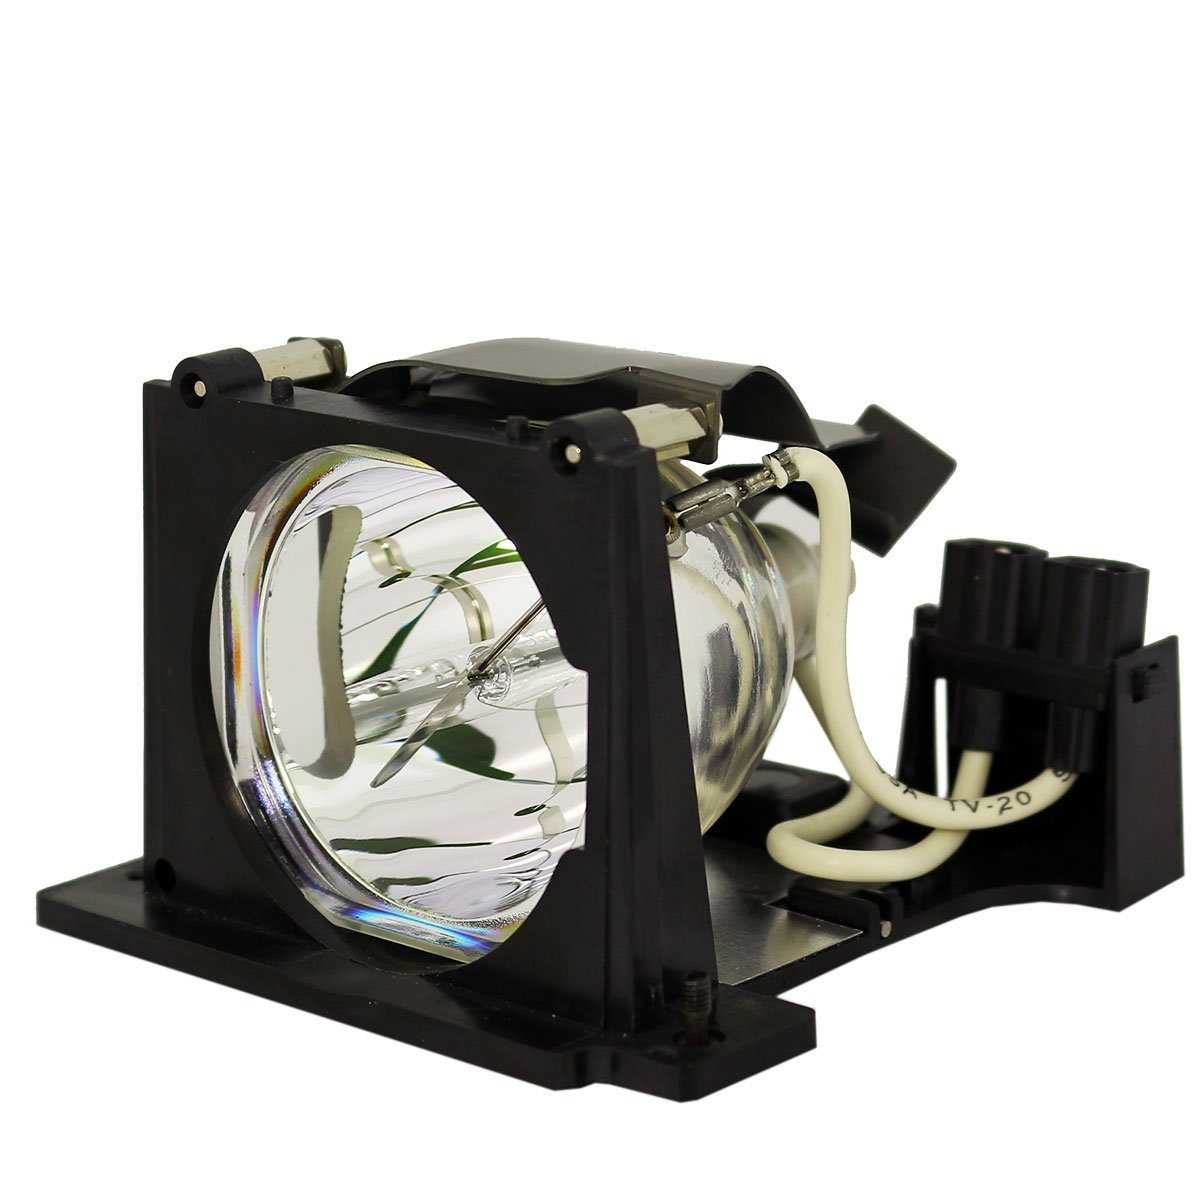 Ceybo 2100MP Lamp/Bulb Replacement with Housing for Dell Projector